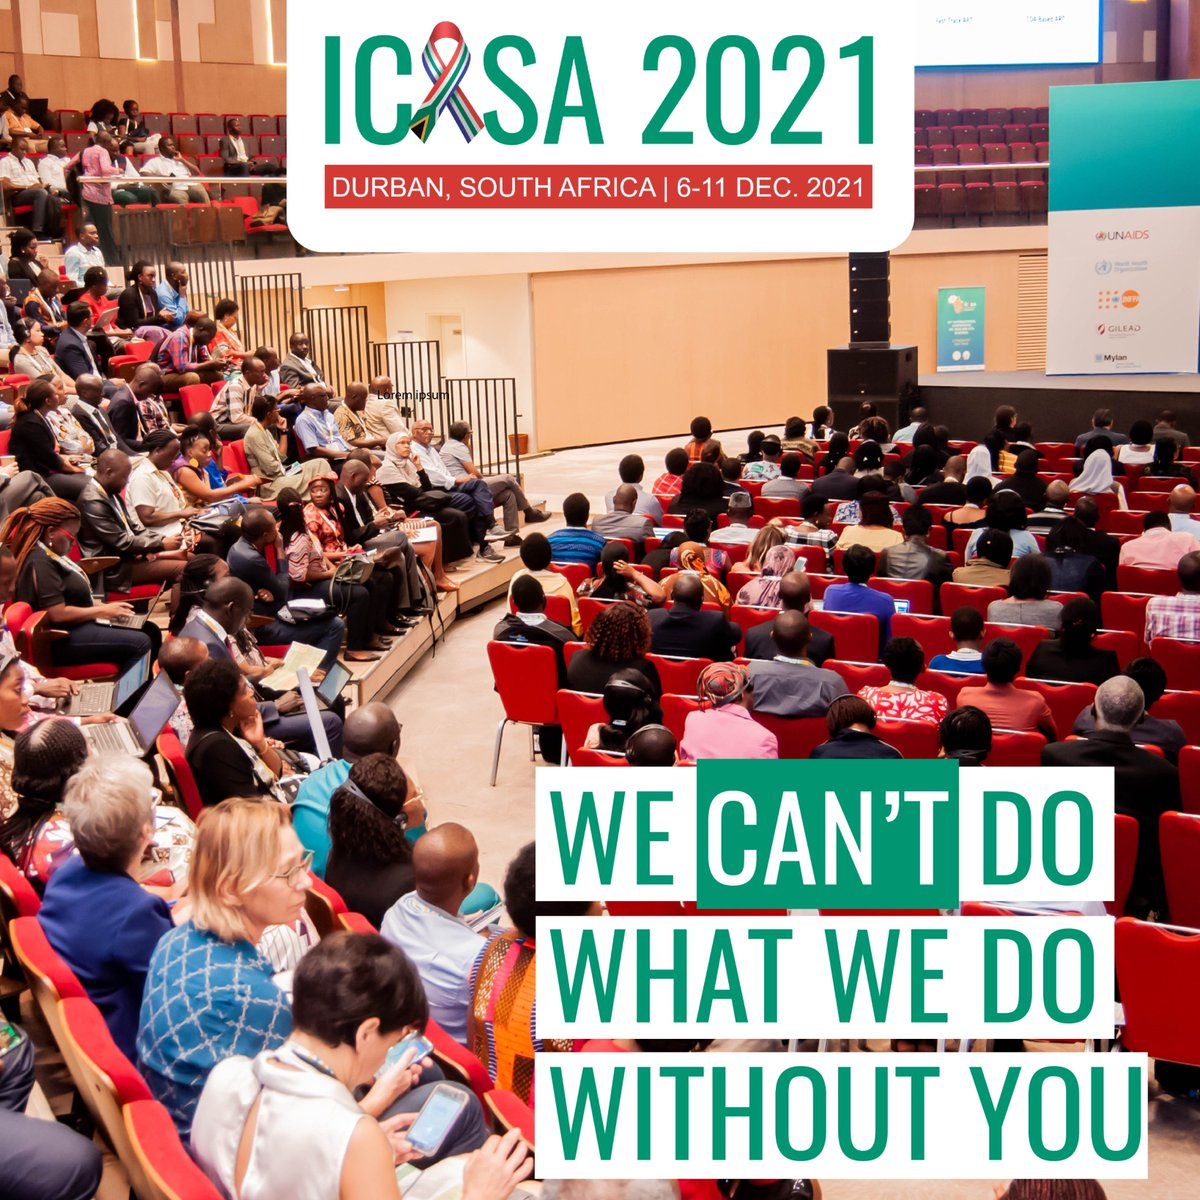 #Alert #ICASA2021Conference @icasa2021 Have you submitted yours yet? Deadline is tomorrow. Submit yours using the link from the quoted tweet.